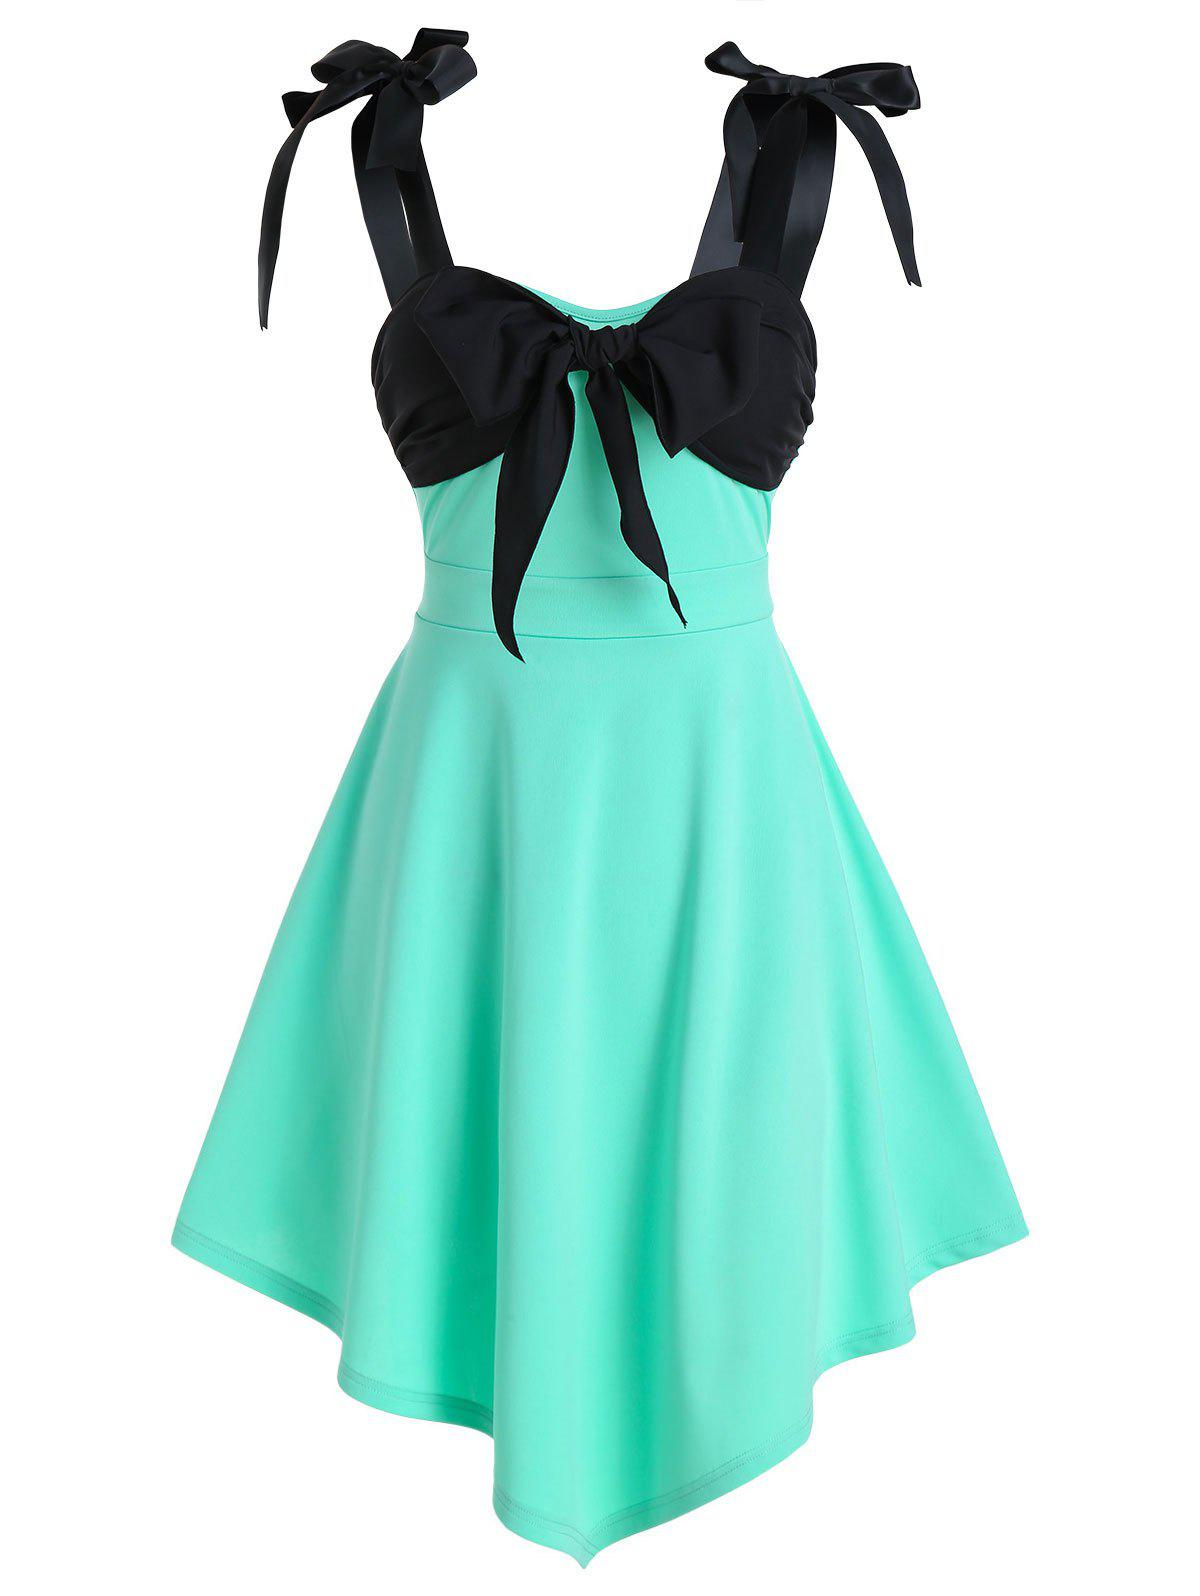 Bowknot Detail Pointed Hem Sleeveless Flare Dress - AQUAMARINE L